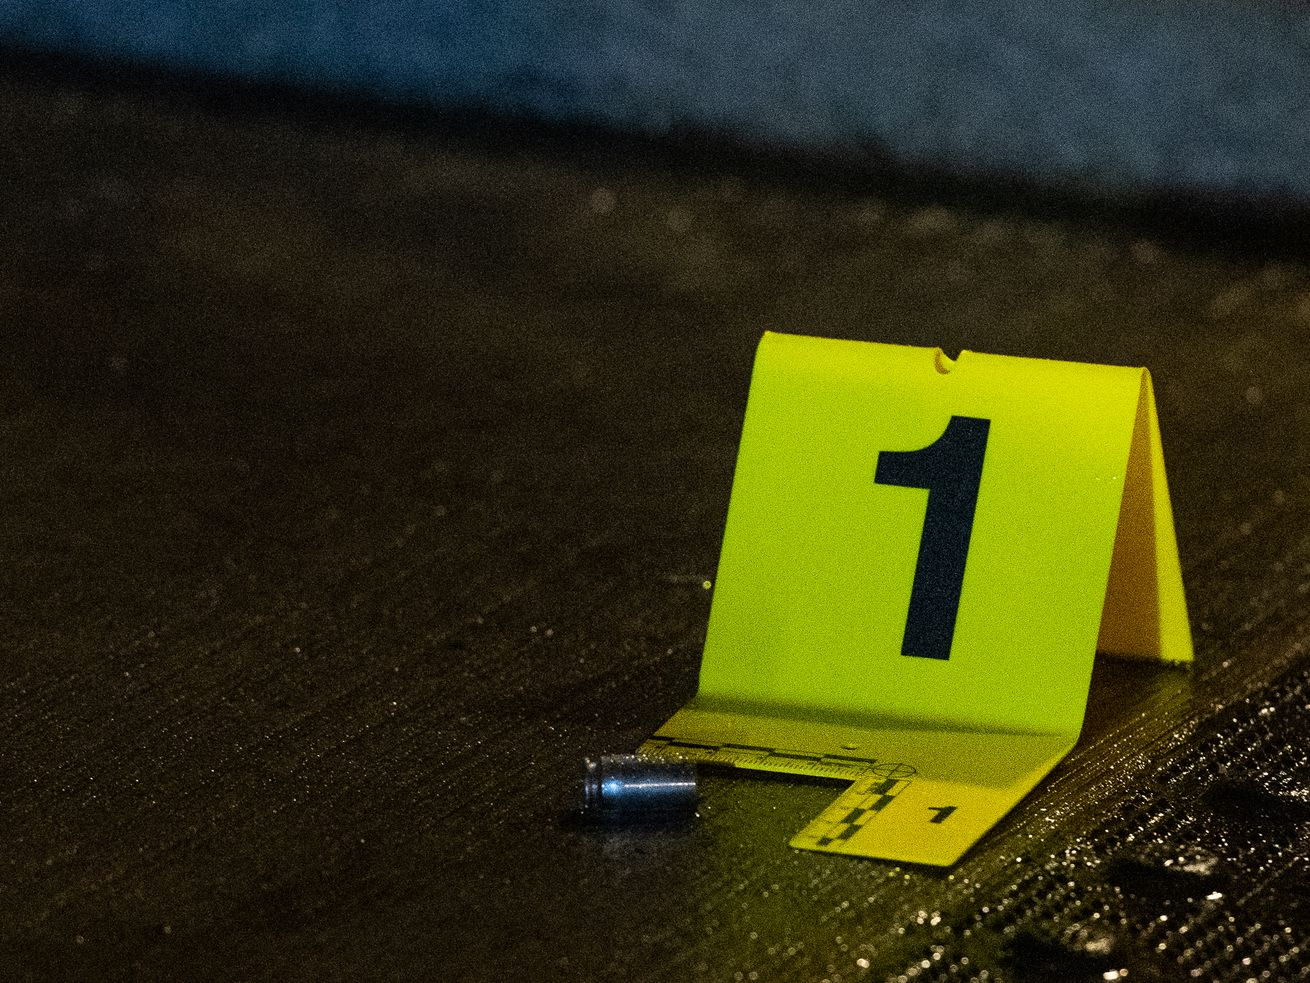 A woman was shot Oct. 13, 2019, in the 2900 block of west Lexington Street.